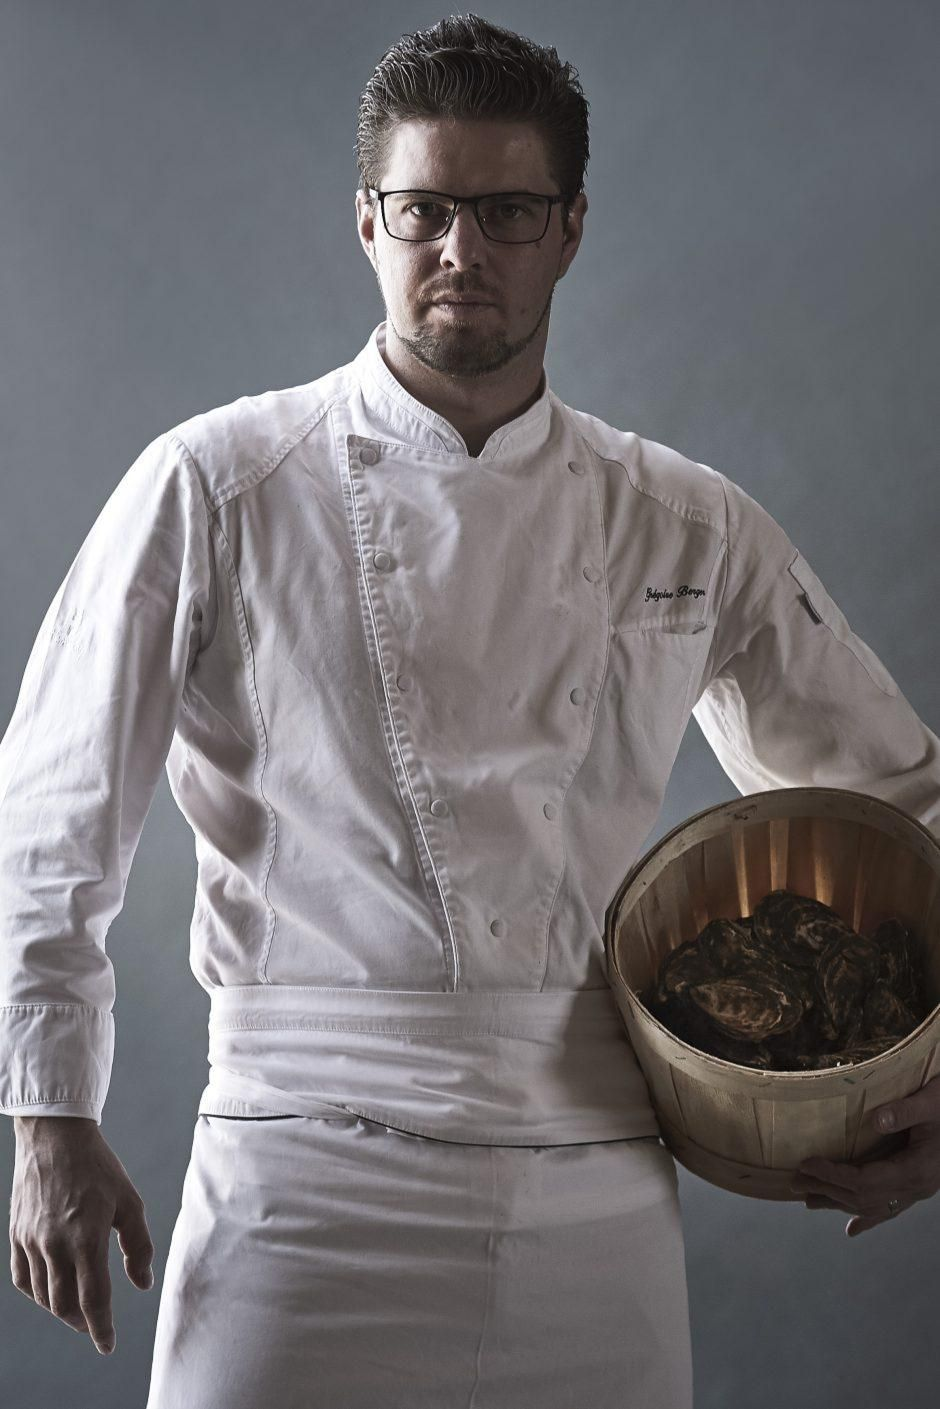 Chef Gregoire Berger